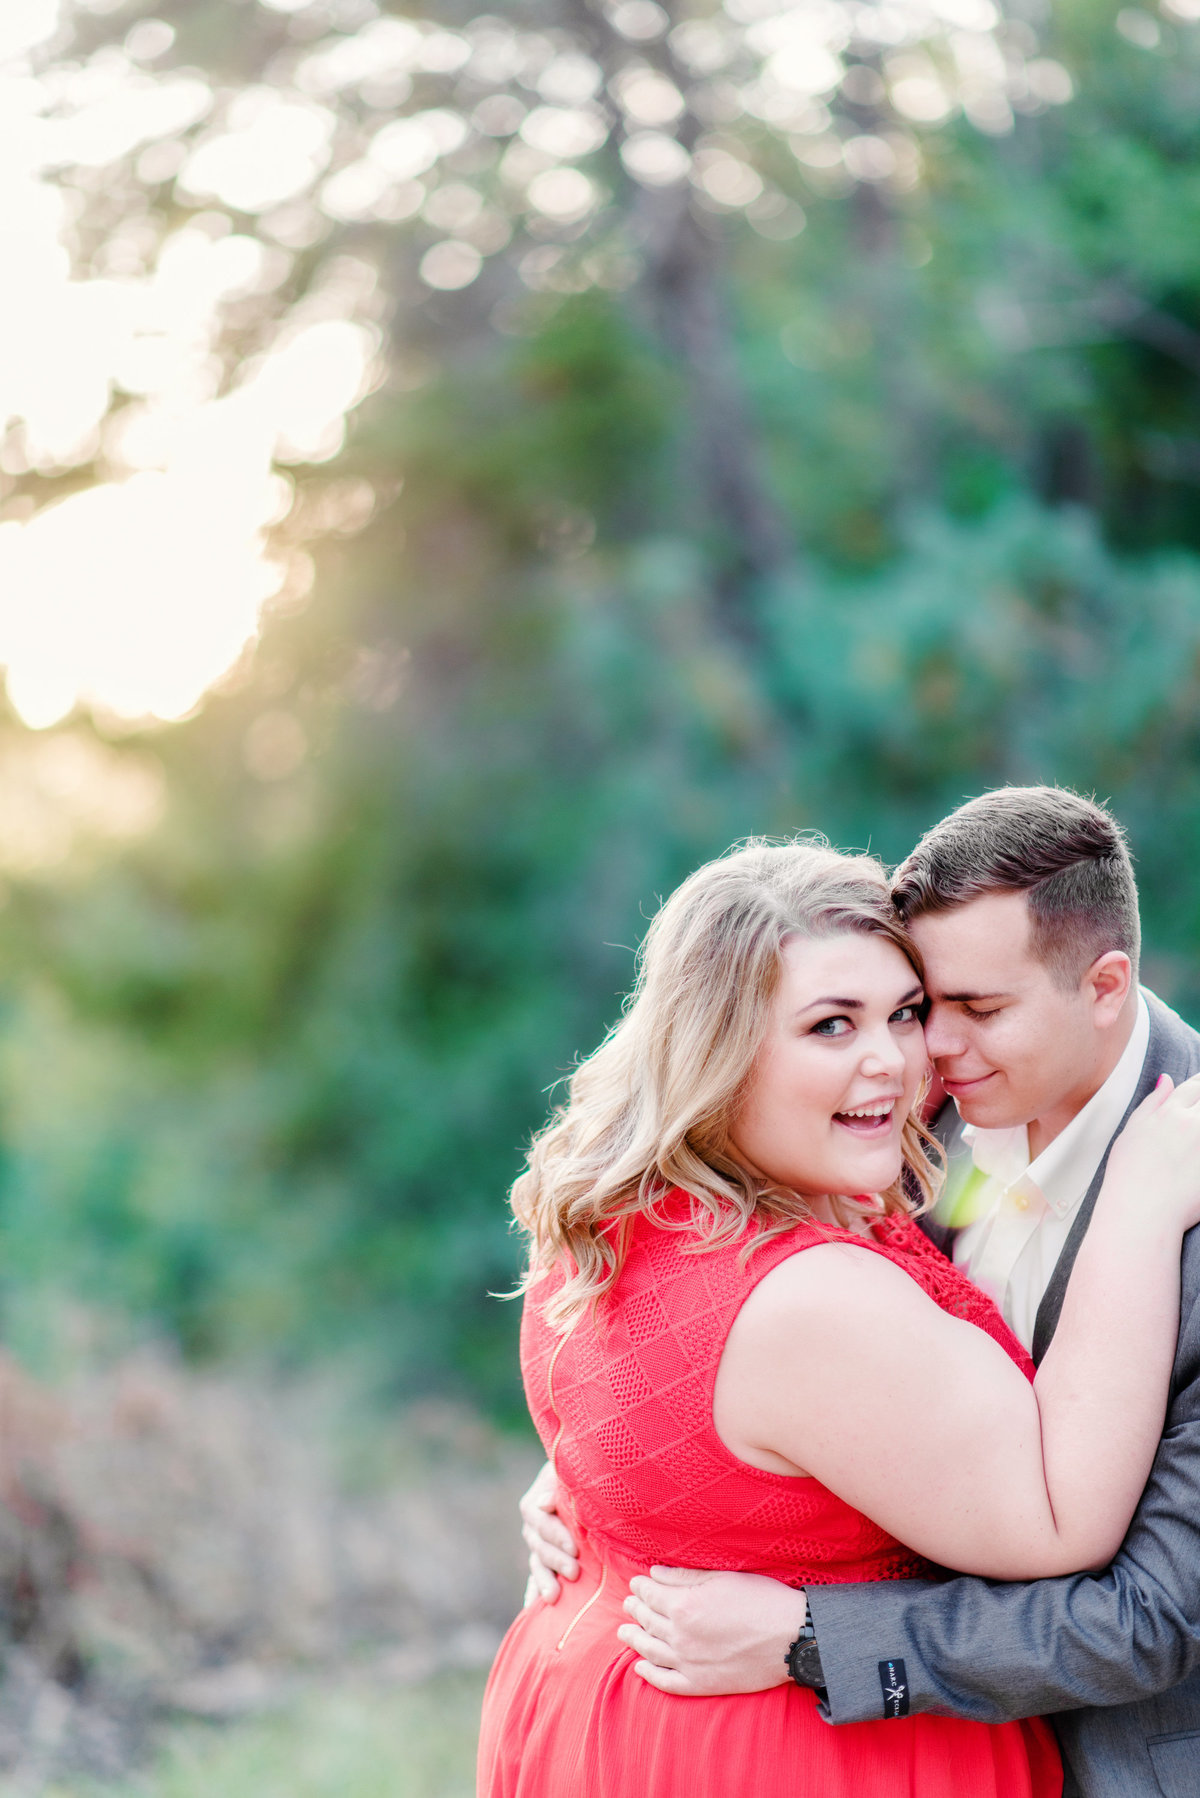 romantic engagement portrait photography in northern michigan